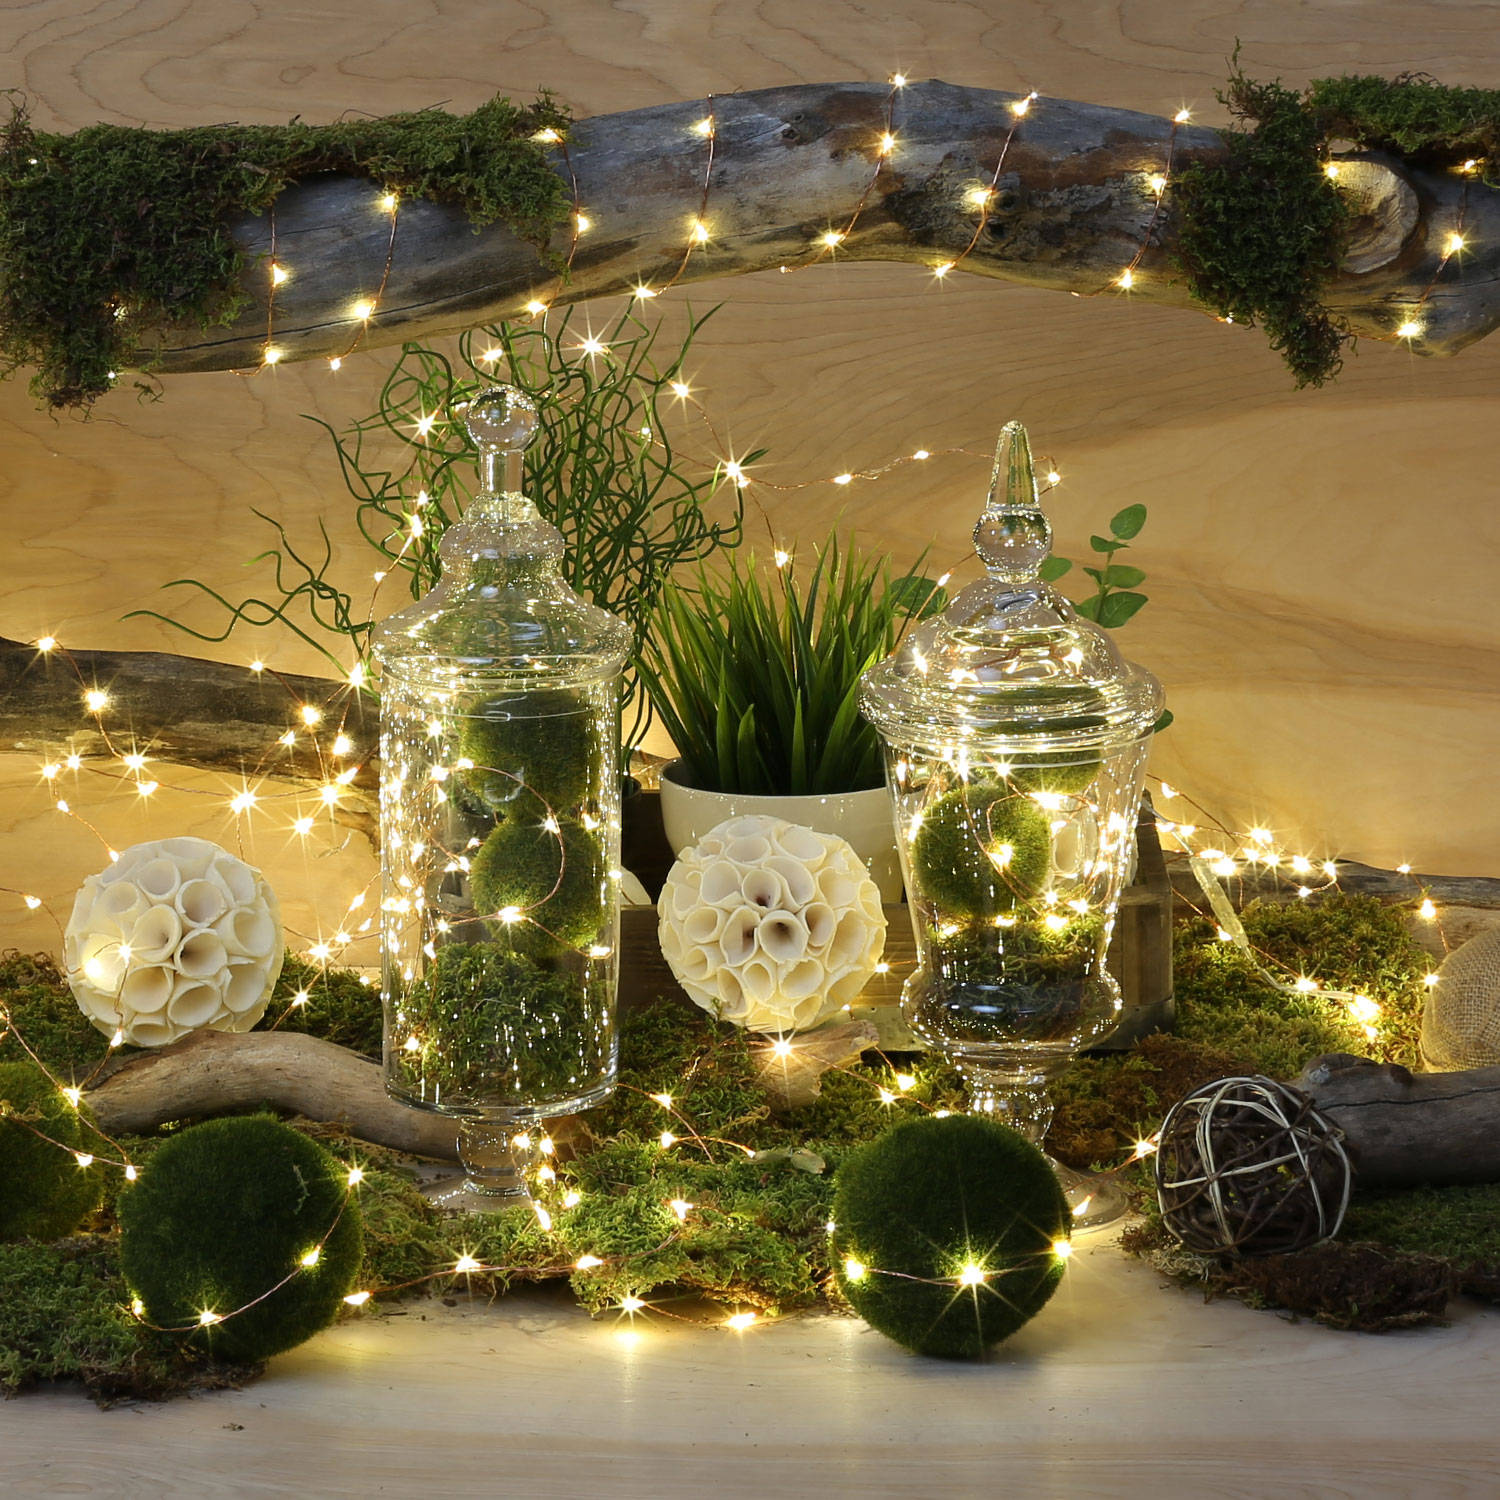 Outdoor Light Bulb picture on warm white starry plug copper wire string lights p 37050 with Outdoor Light Bulb, Outdoor Lighting ideas 0cddee771b707457d155f0cdc477aef8